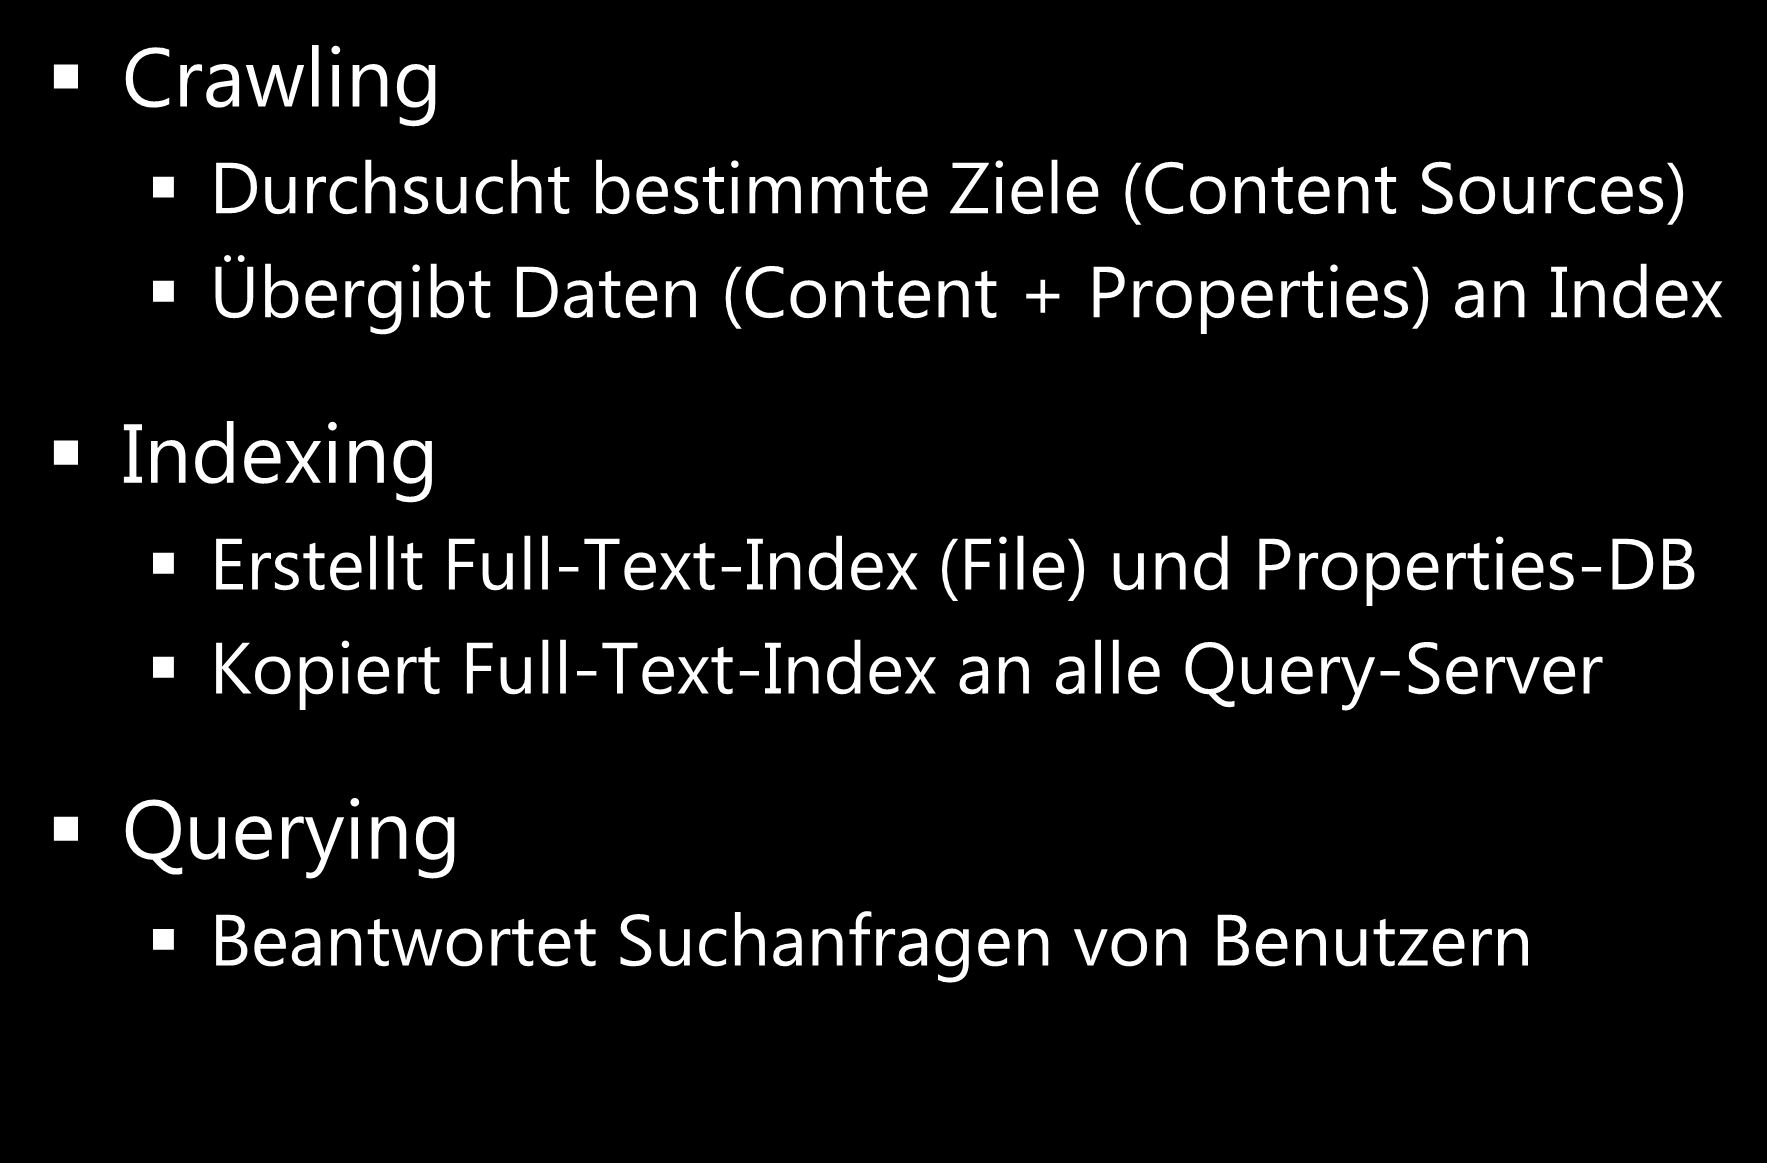 Grundlagen Crawling, Indexing, Quering? Was ist was?